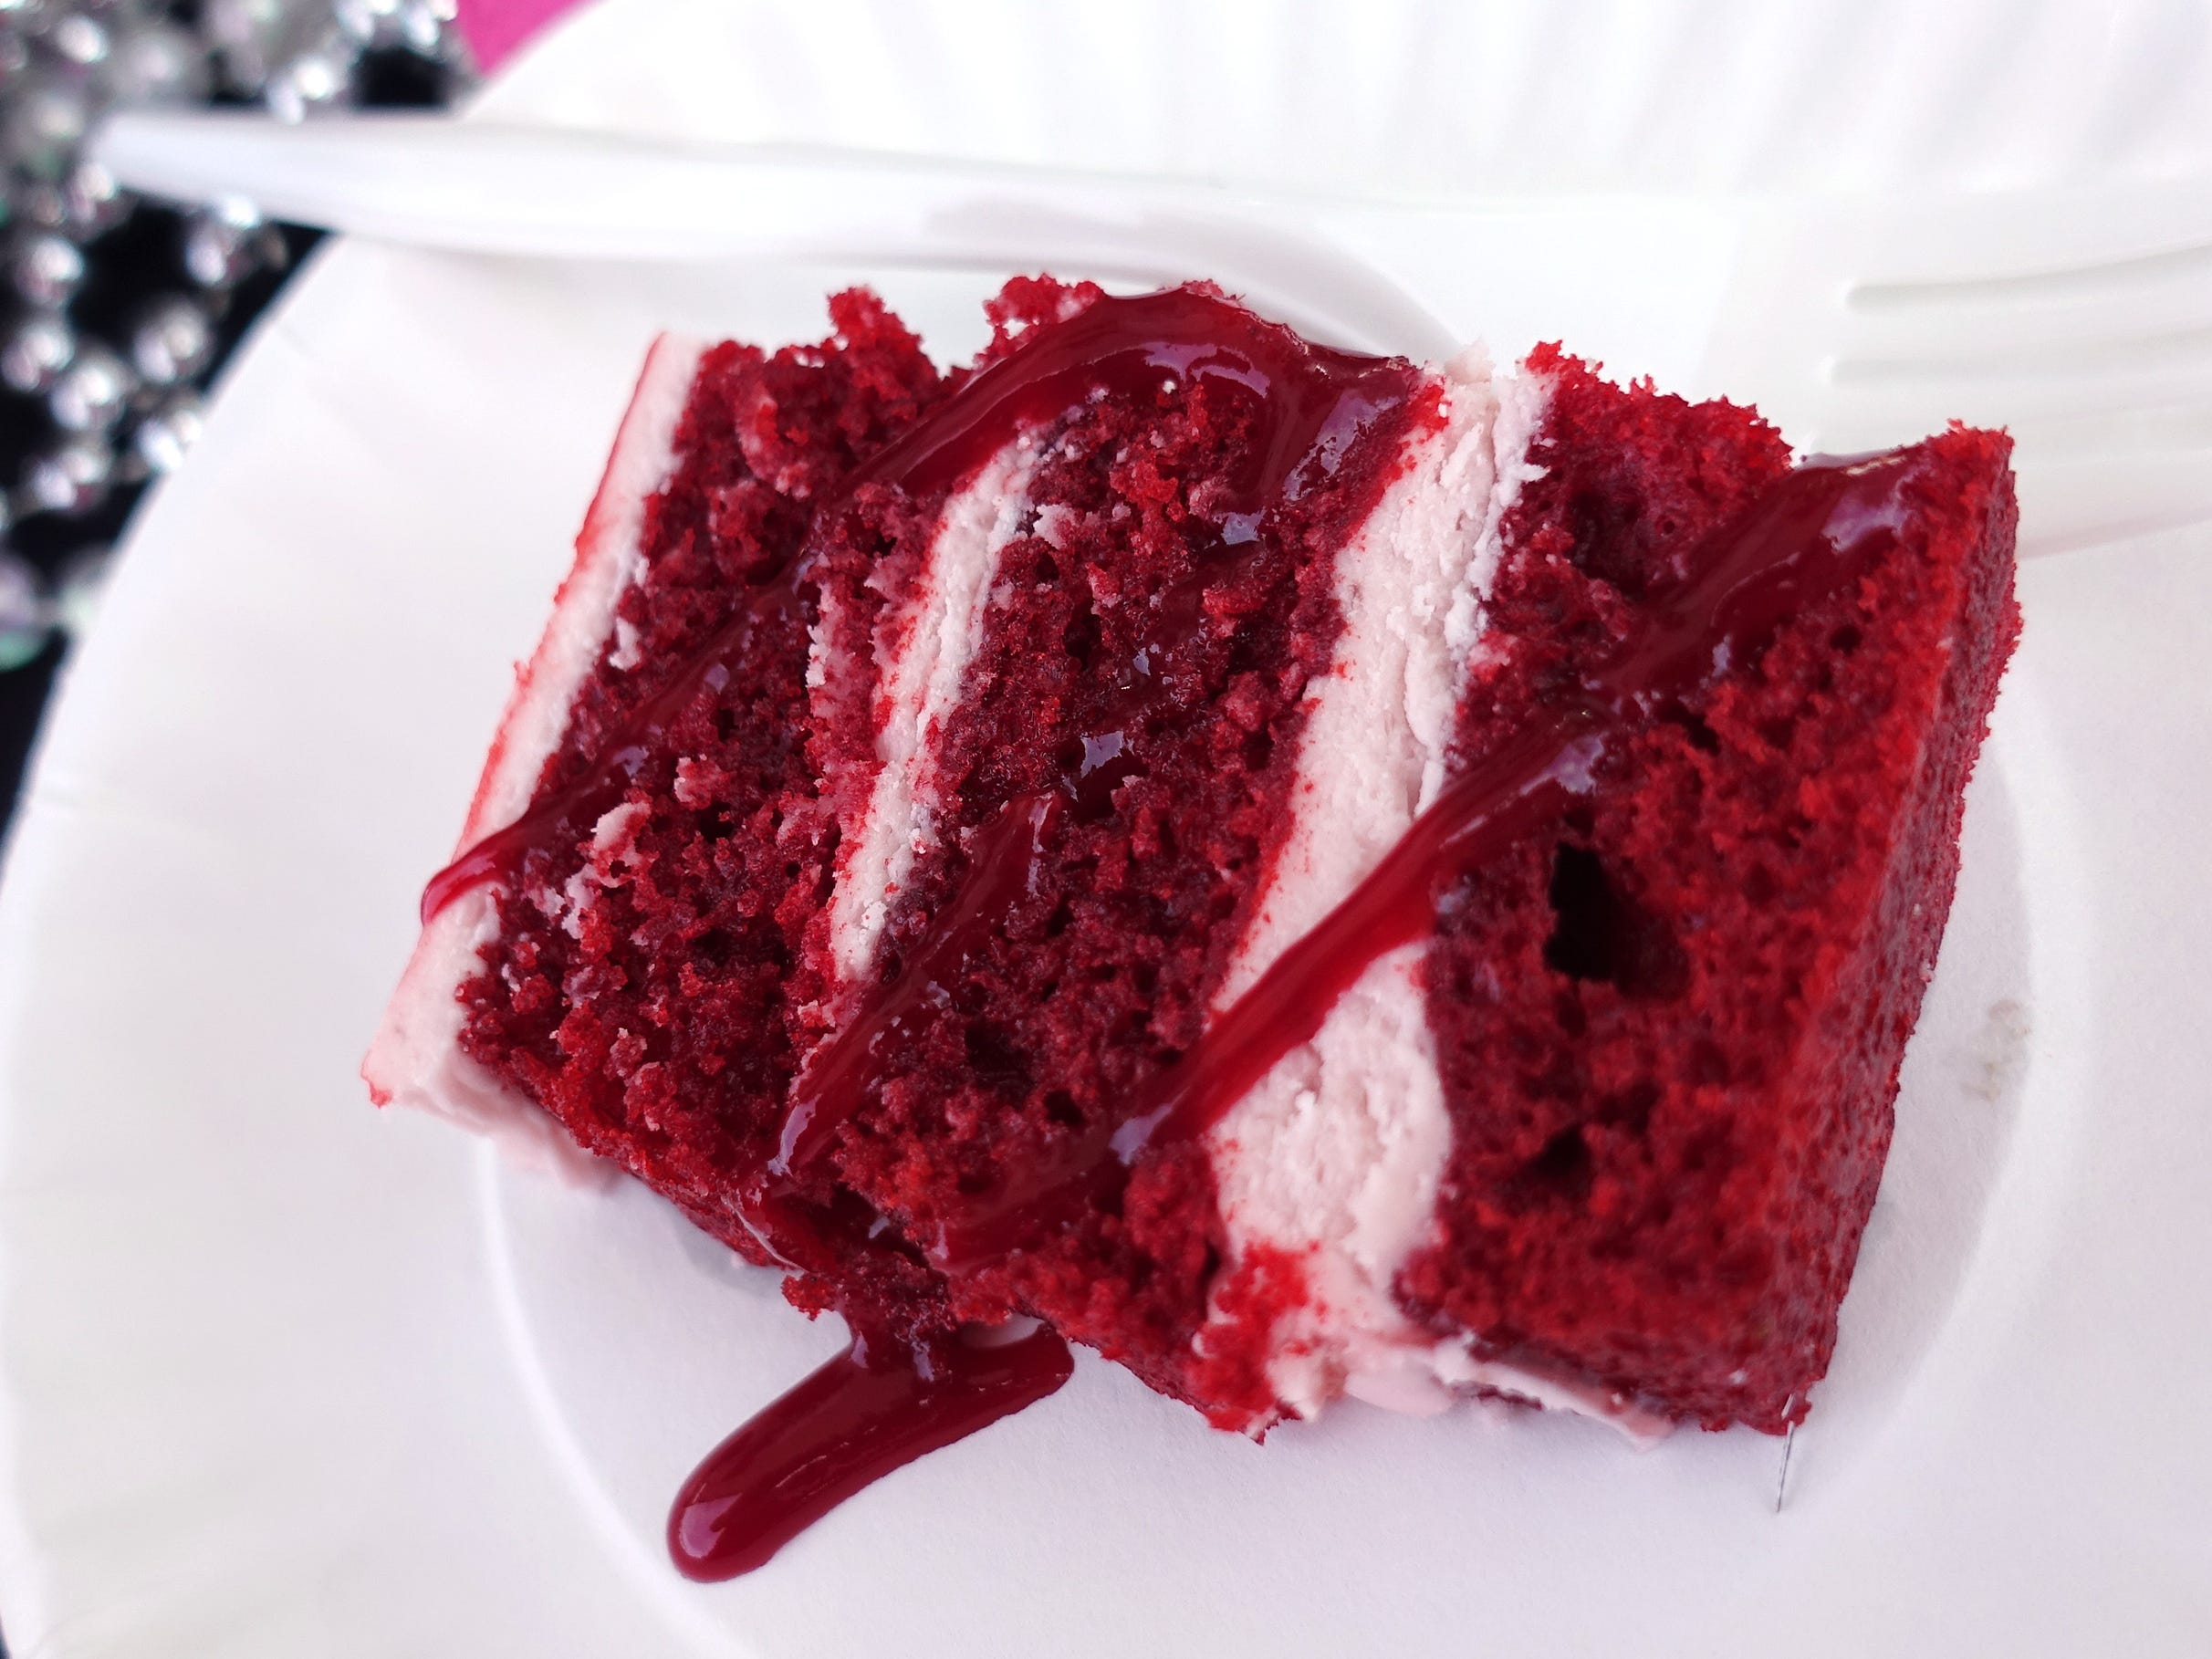 Raspberry red velvet cake with raspberry jam and raspberry cream from Tracy Dempsey Originals at the 2019 Devour Culinary Classic at the Desert Botanical Garden in Phoenix.